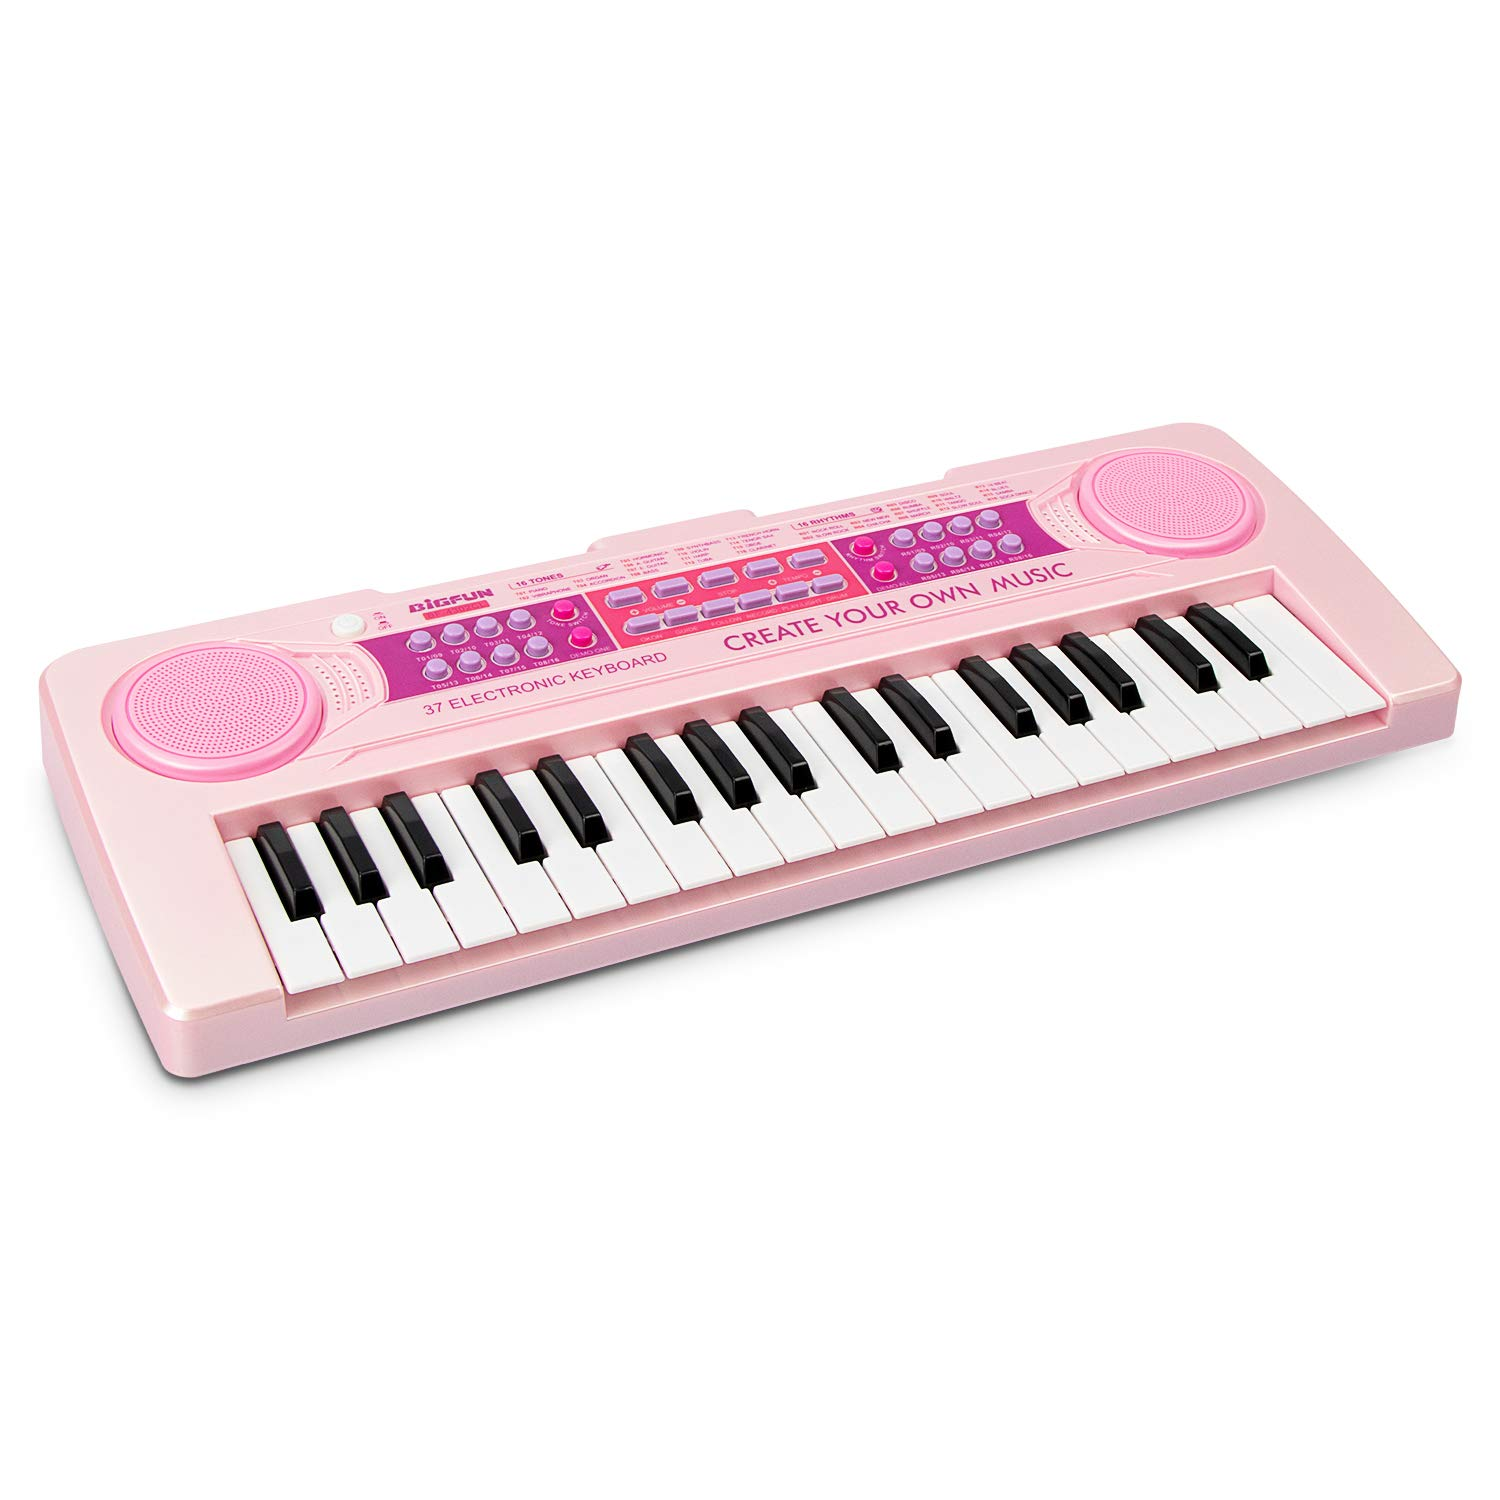 aPerfectLife Kids Keyboard Piano, 37 Keys Multi-Function Charging Electronic Educational Toy Organ for Kids Toddlers Children with Microphone (Pink) by aPerfectLife